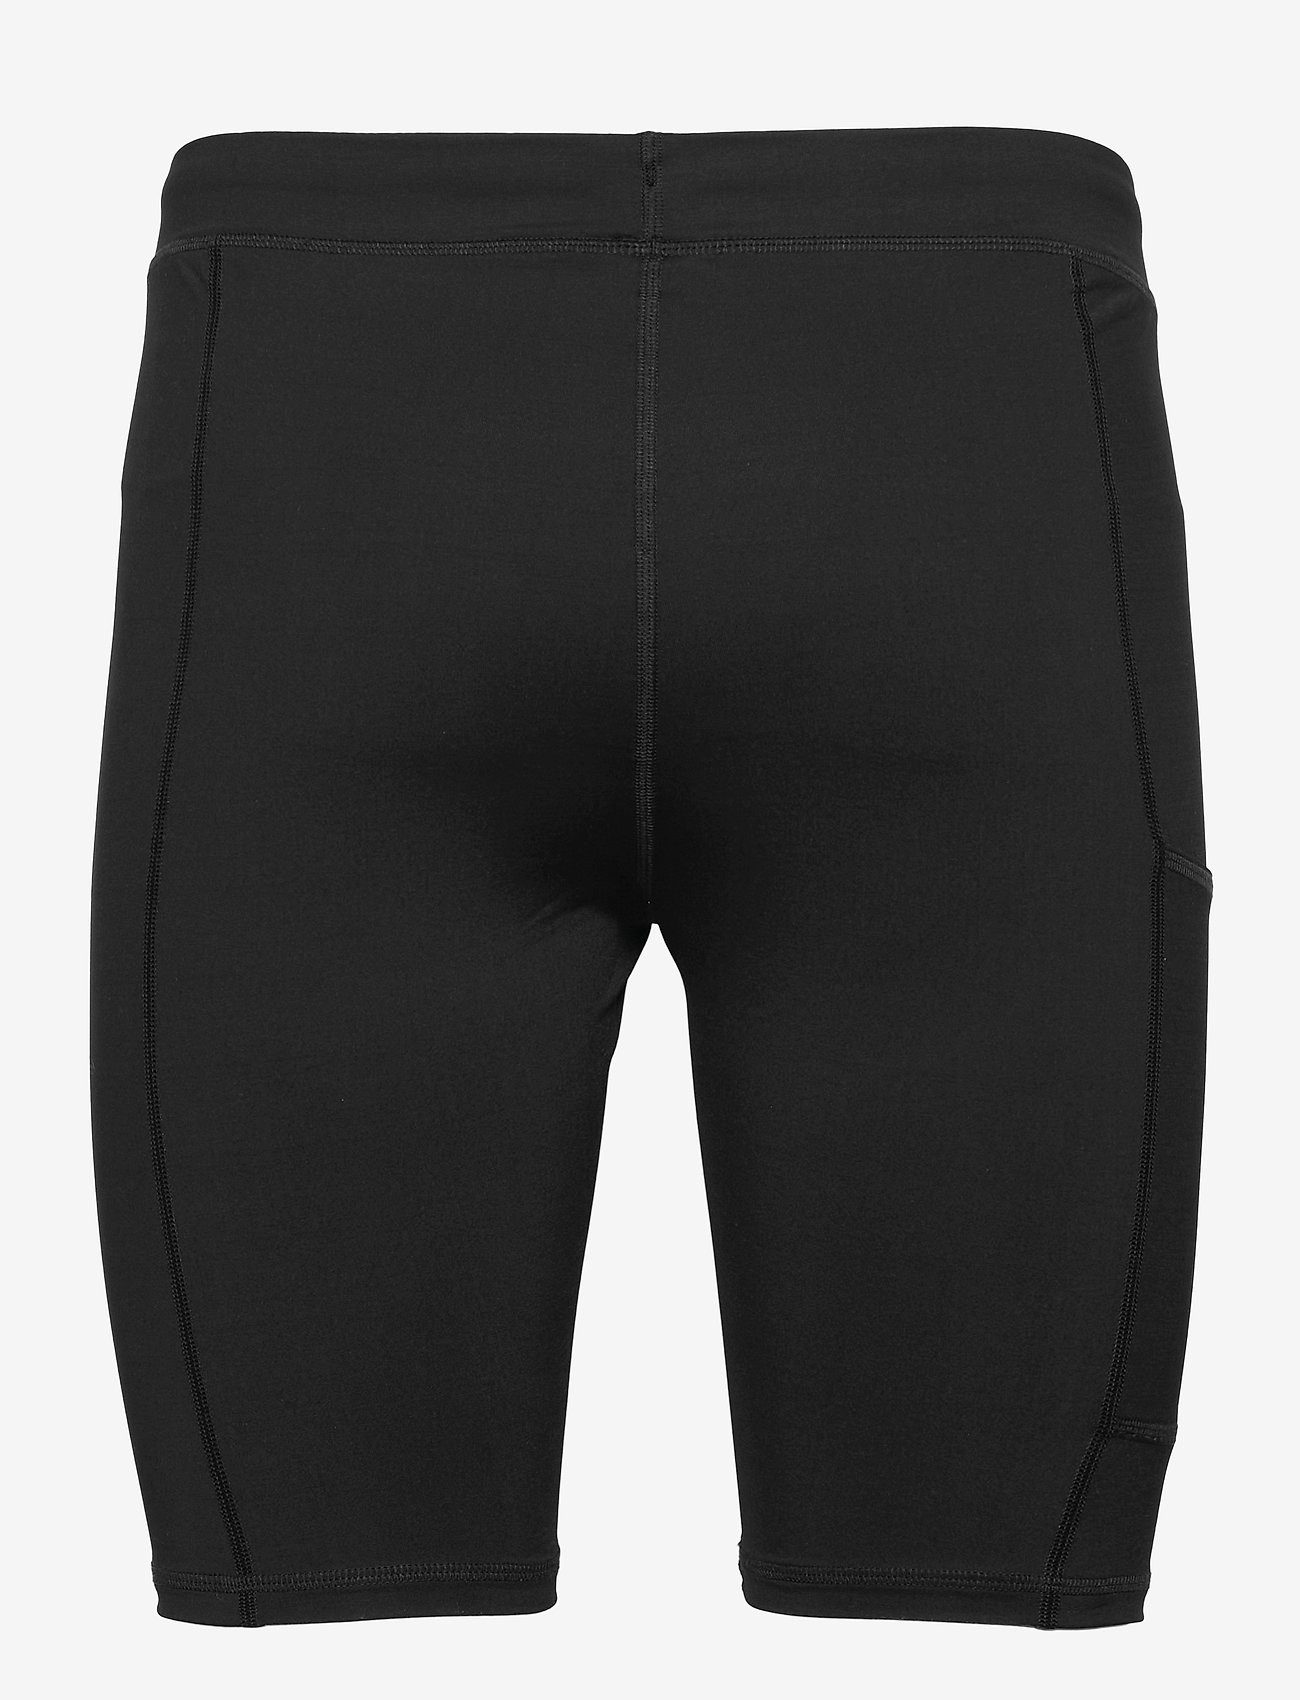 Peak Performance - M Fly half tights - løbe- og træningstights - black - 1